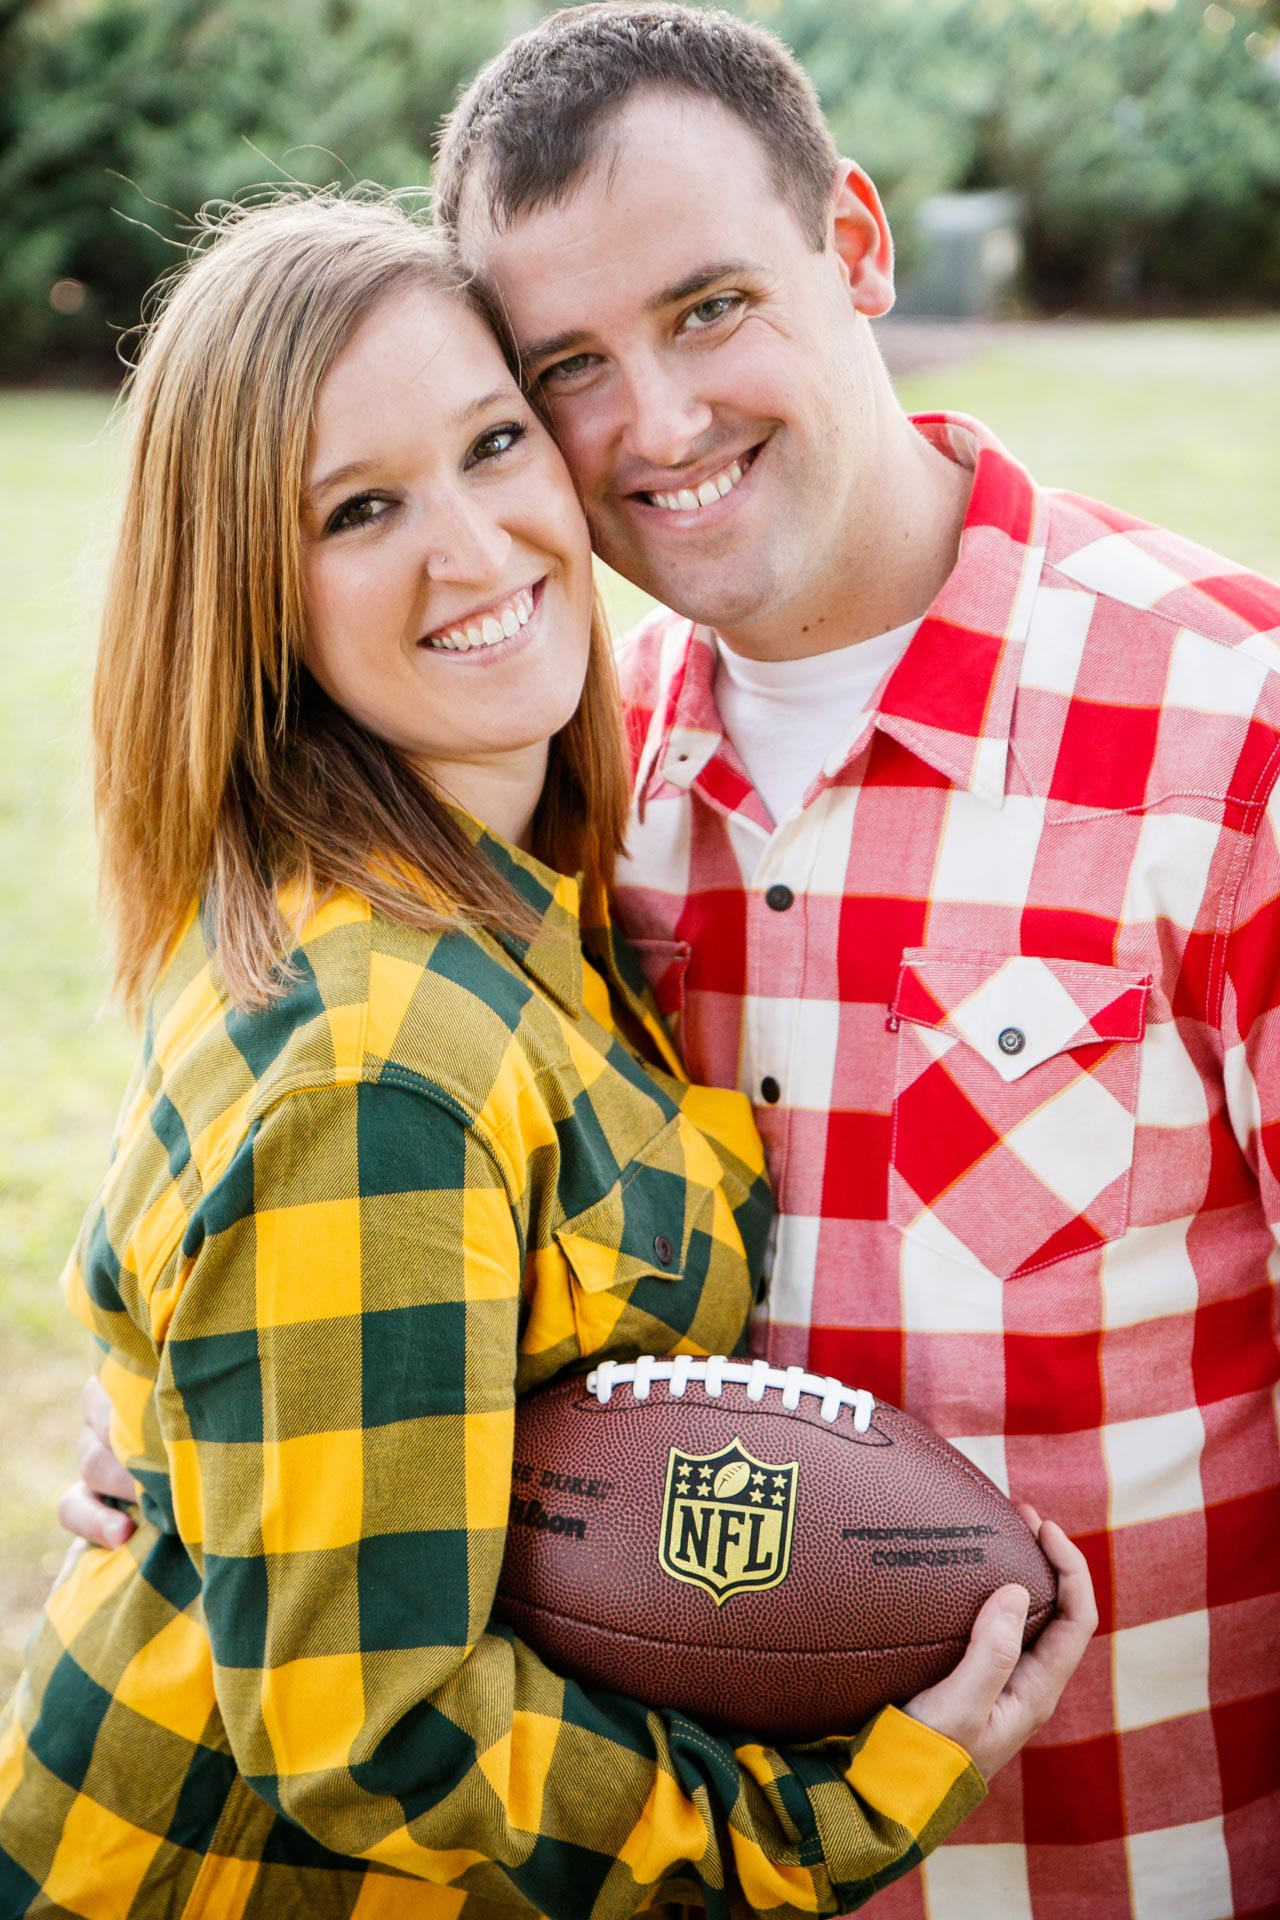 engagement-photos-riverside-park-neenah-adam-shea-photography-green-bay-appleton-neenah-photographer-11.jpg